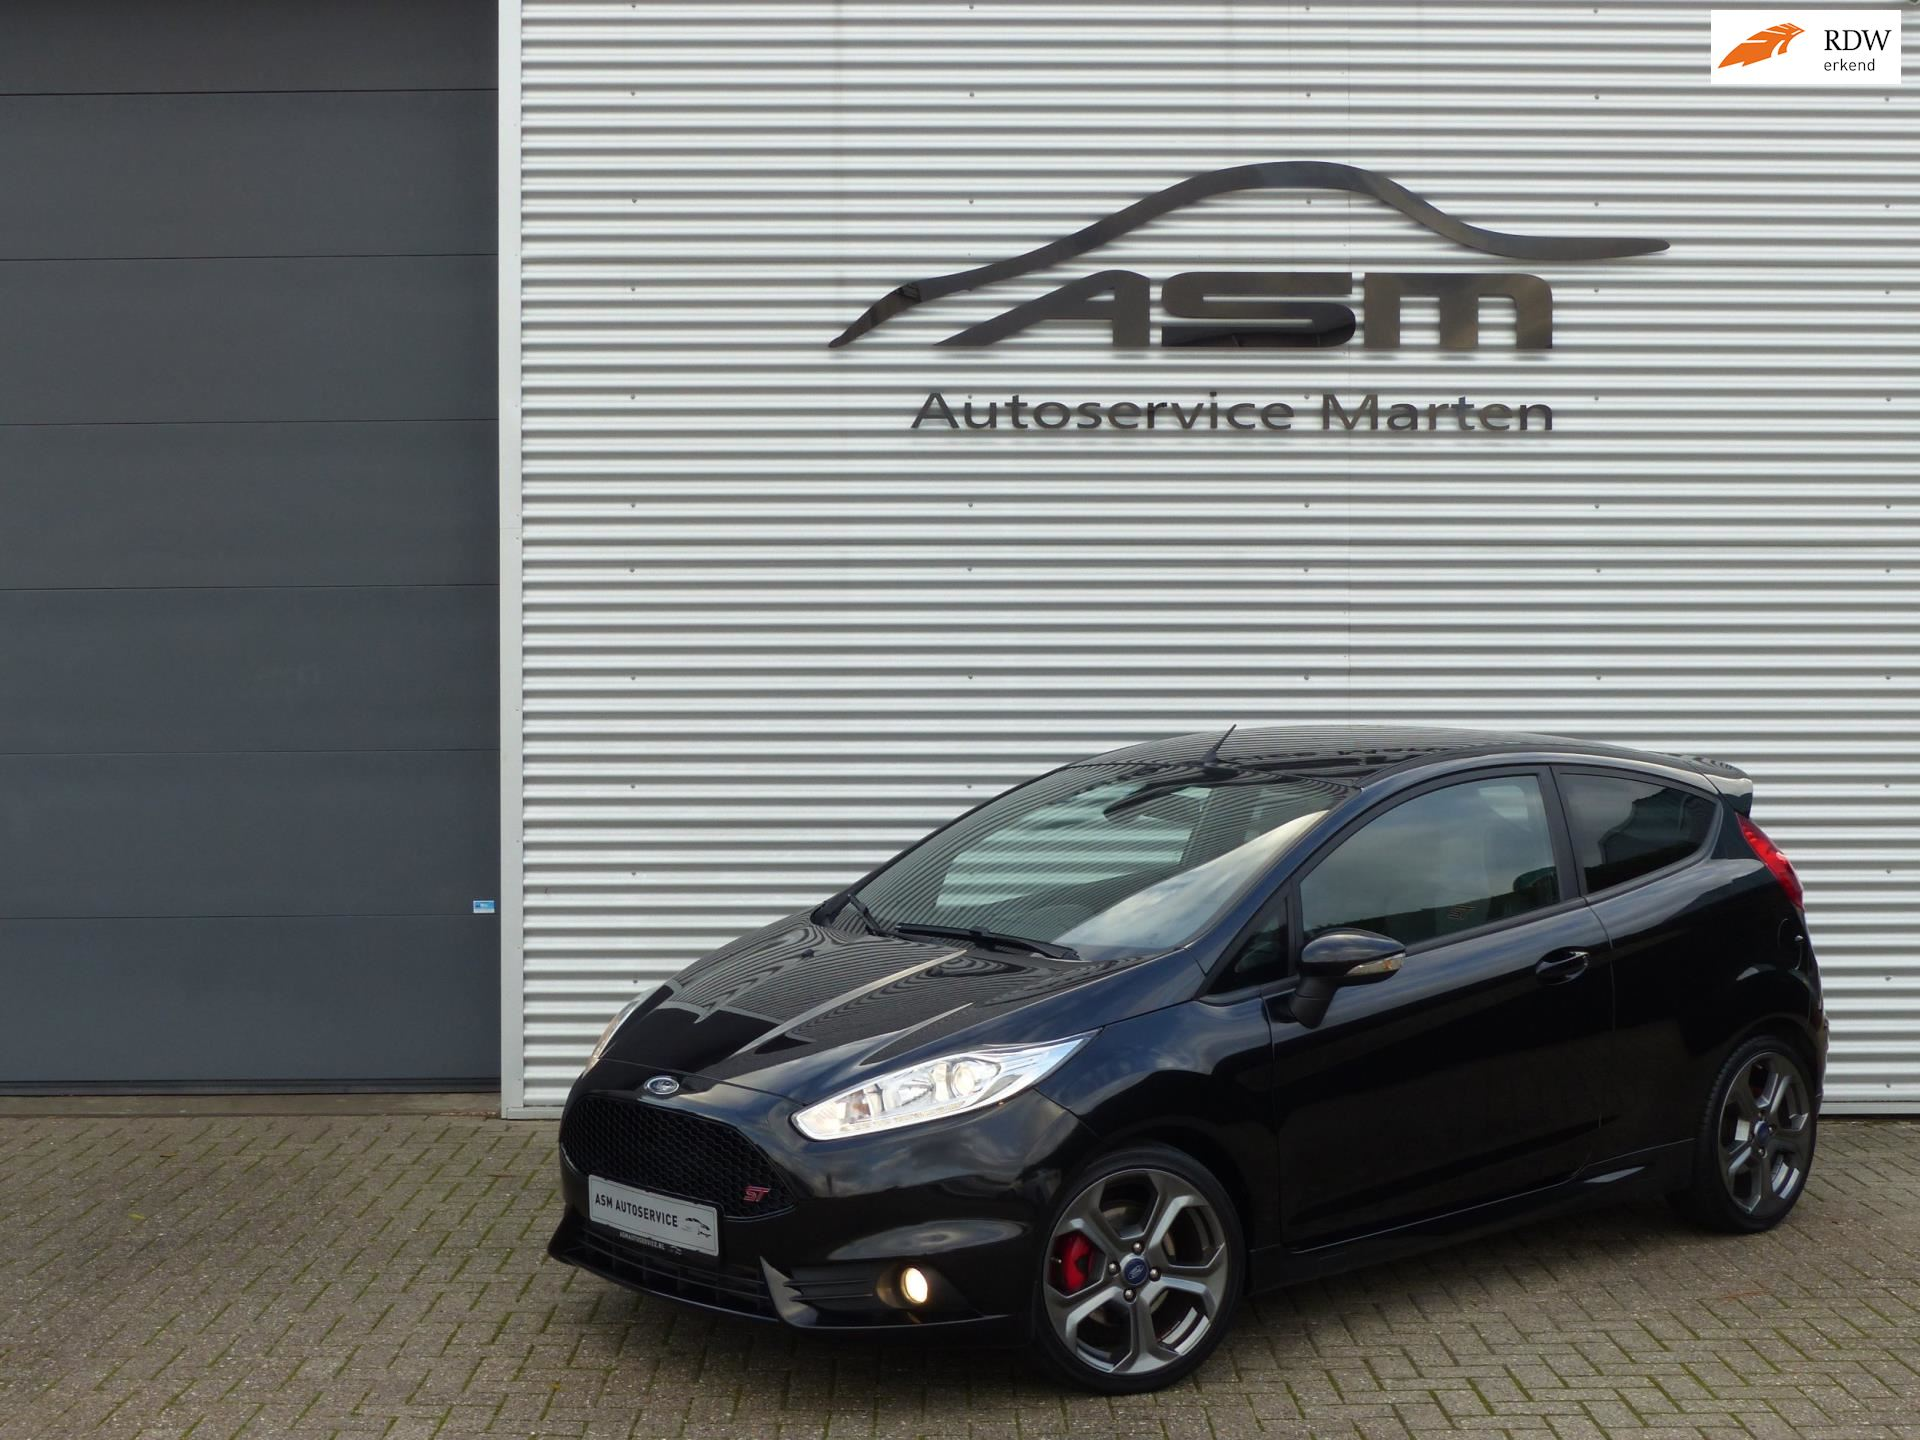 Ford Fiesta occasion - ASM Autoservice Marten